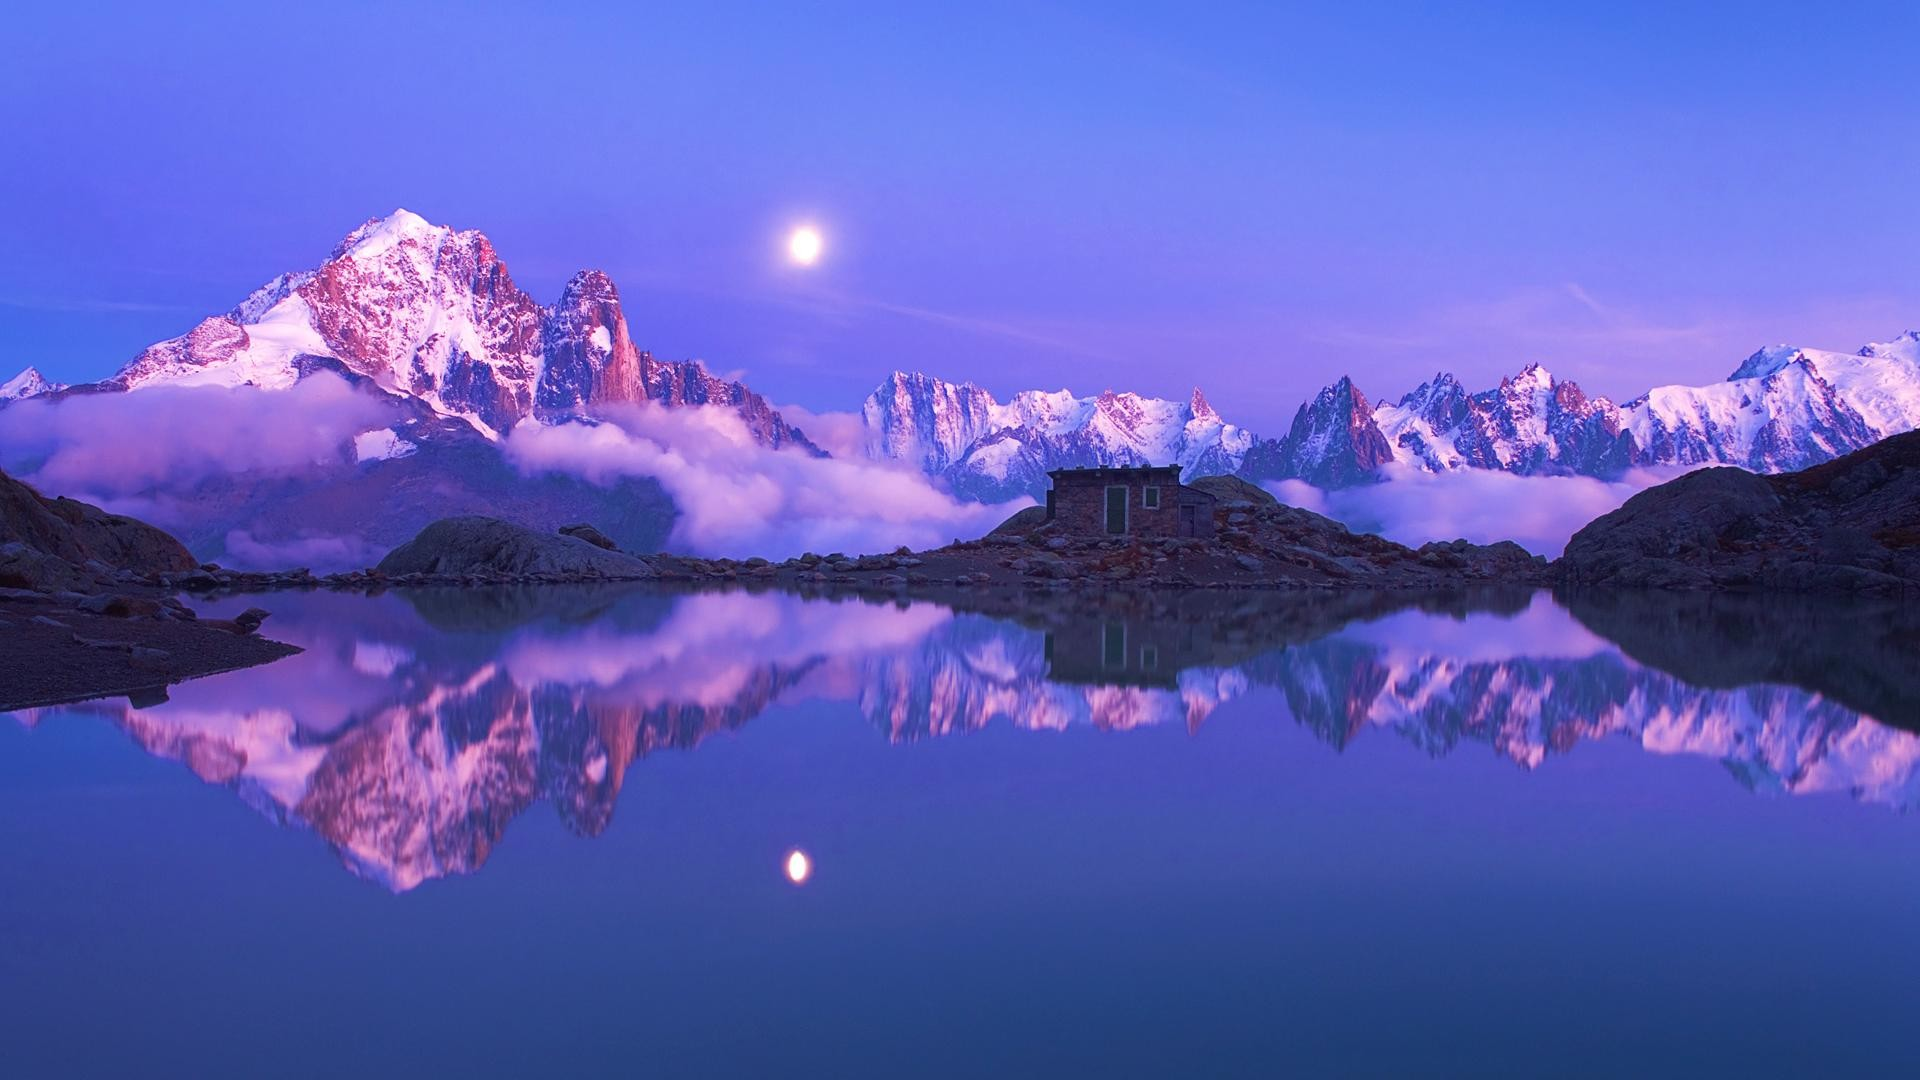 1920x1080  Beautiful Snow mountain reflection desktop wide wallpapers:1280x800,1440x900,1680x1050  - hd